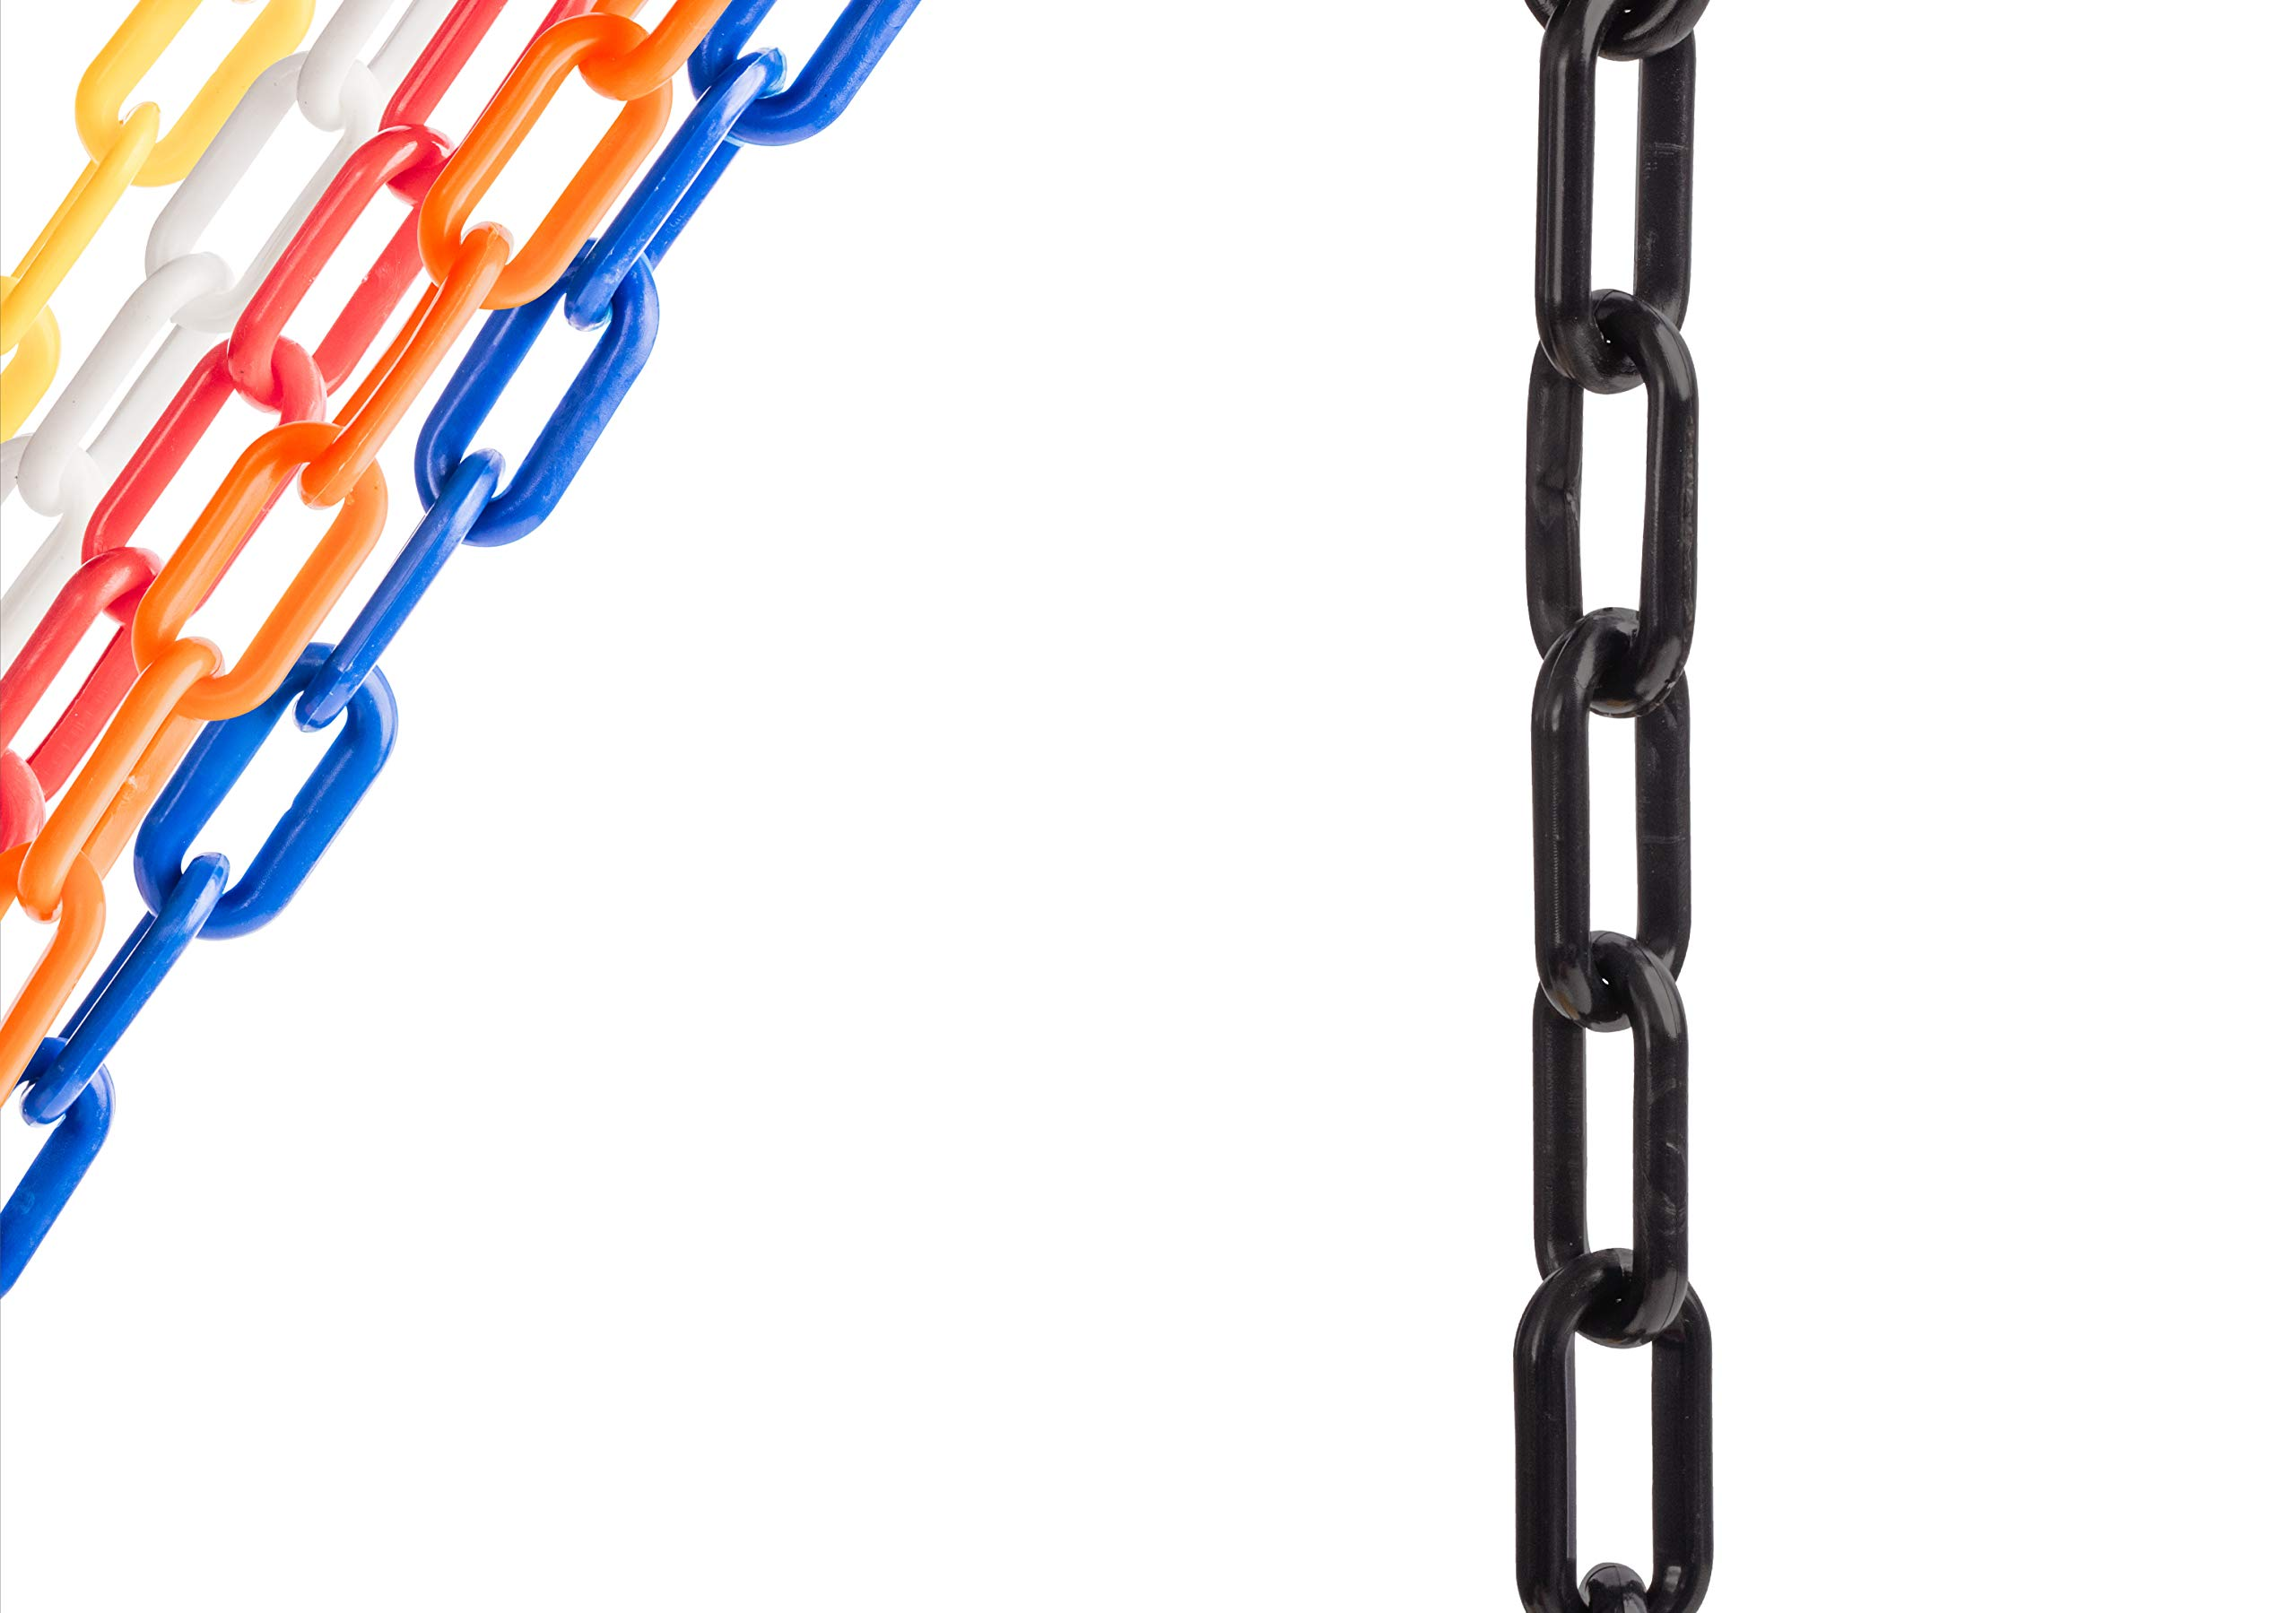 US Weight Chainboss Black Plastic Safety Chain with Sun Shield UV Resistant Technology - 25 ft